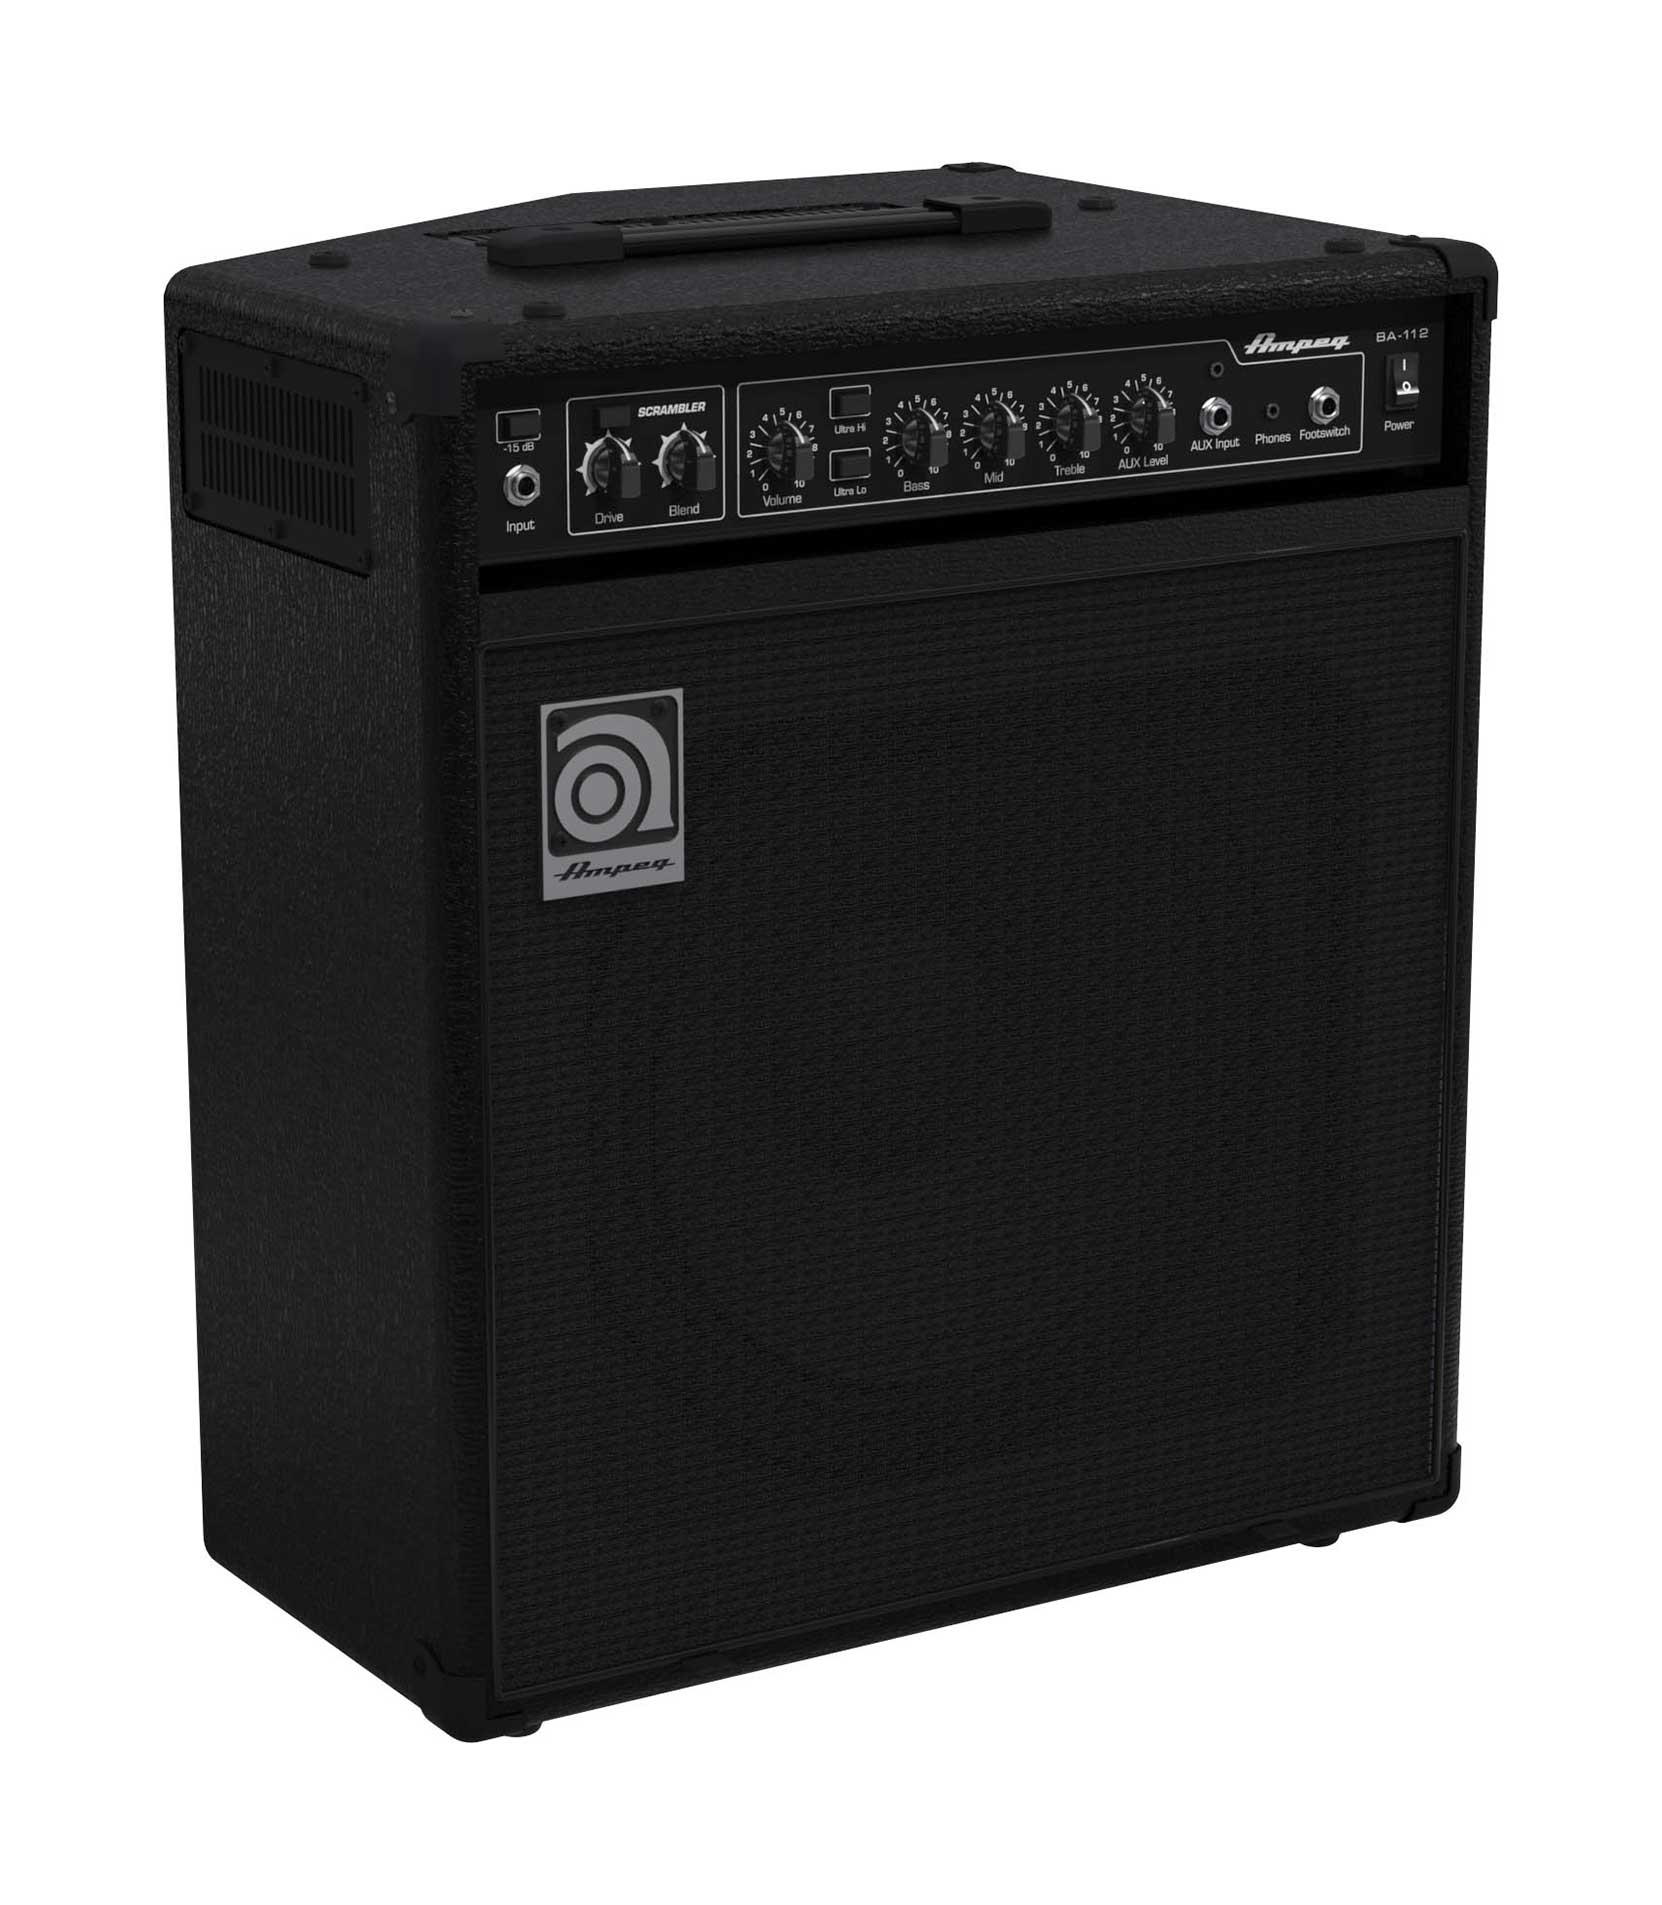 Melody House Musical Instruments Store - BA 112v2